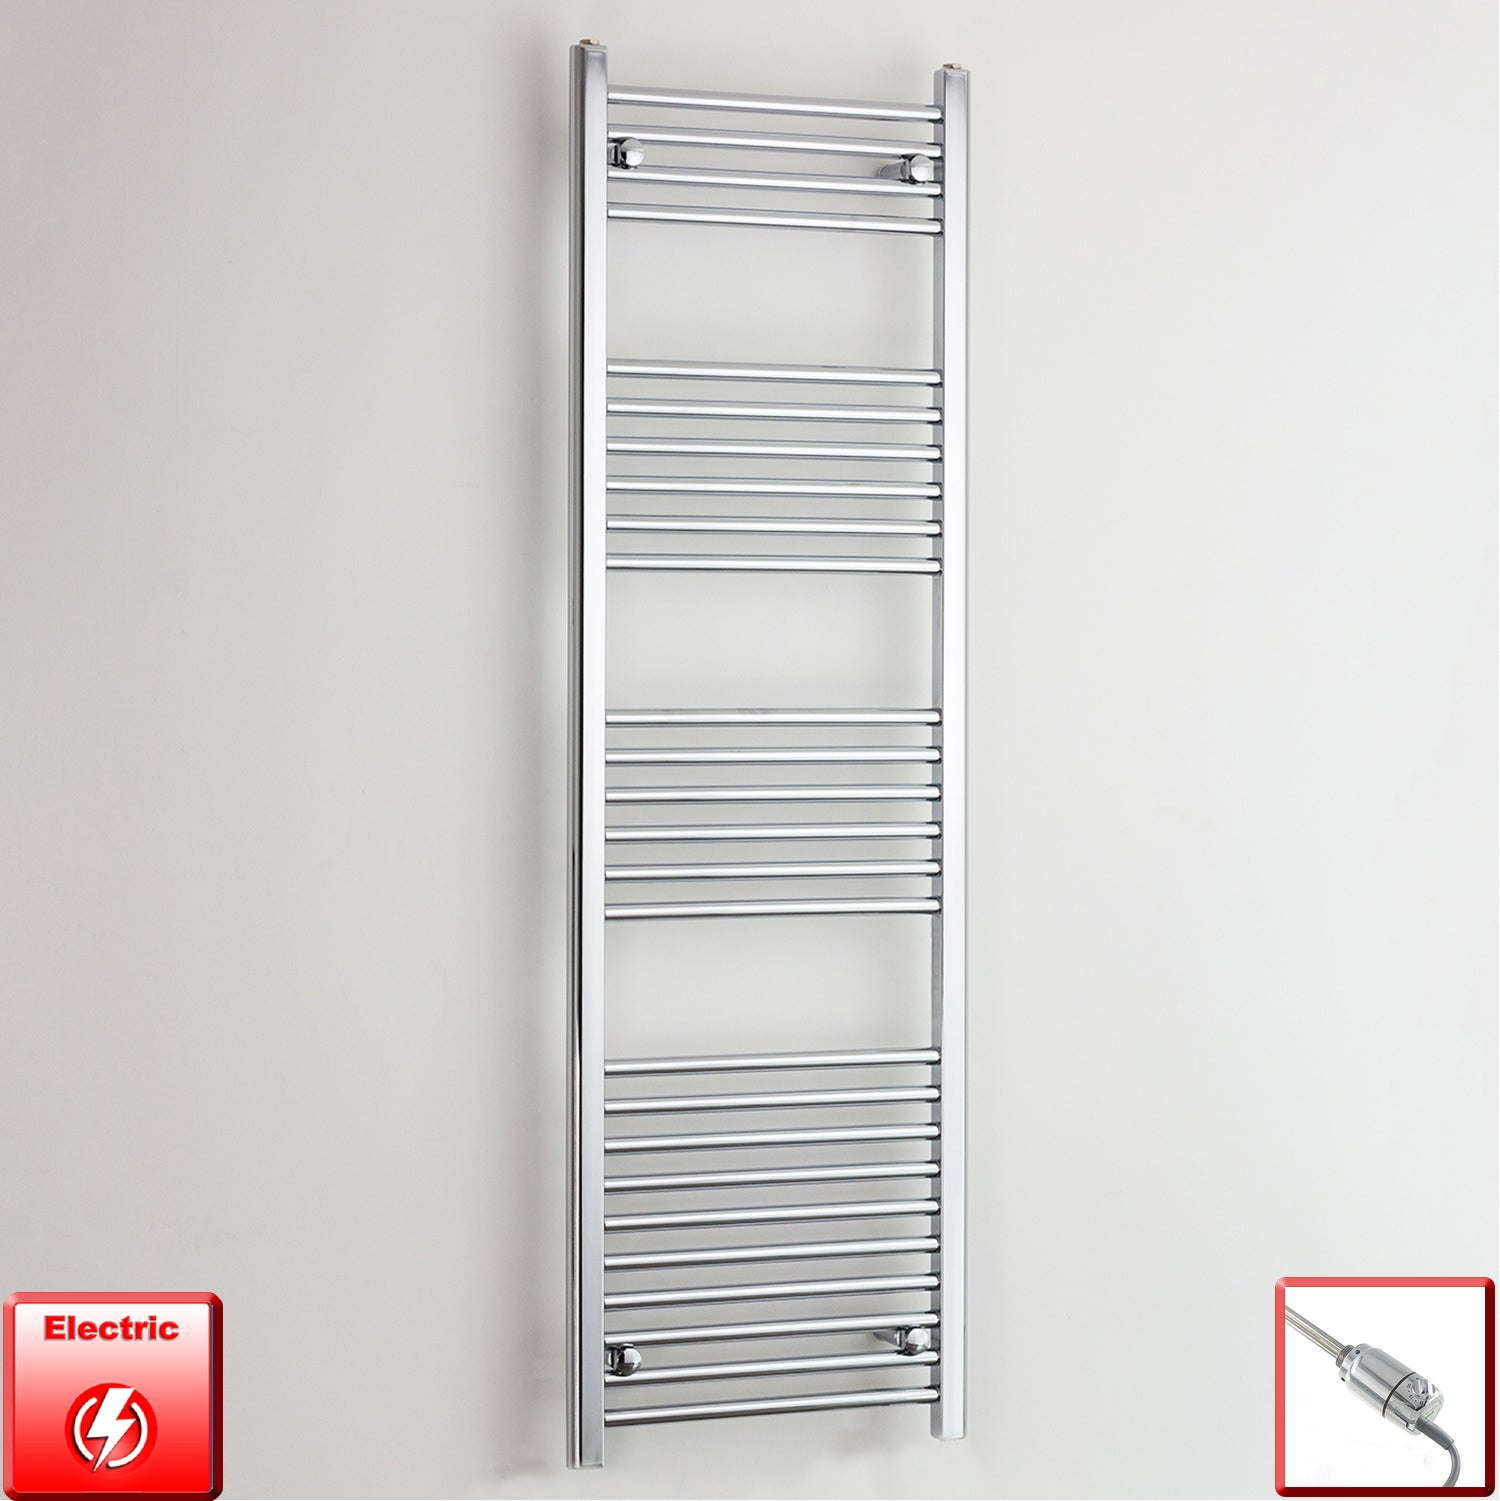 500mm Wide 1600mm High Flat Or Curved Chrome Pre-Filled Electric Heated Towel Rail Radiator HTR